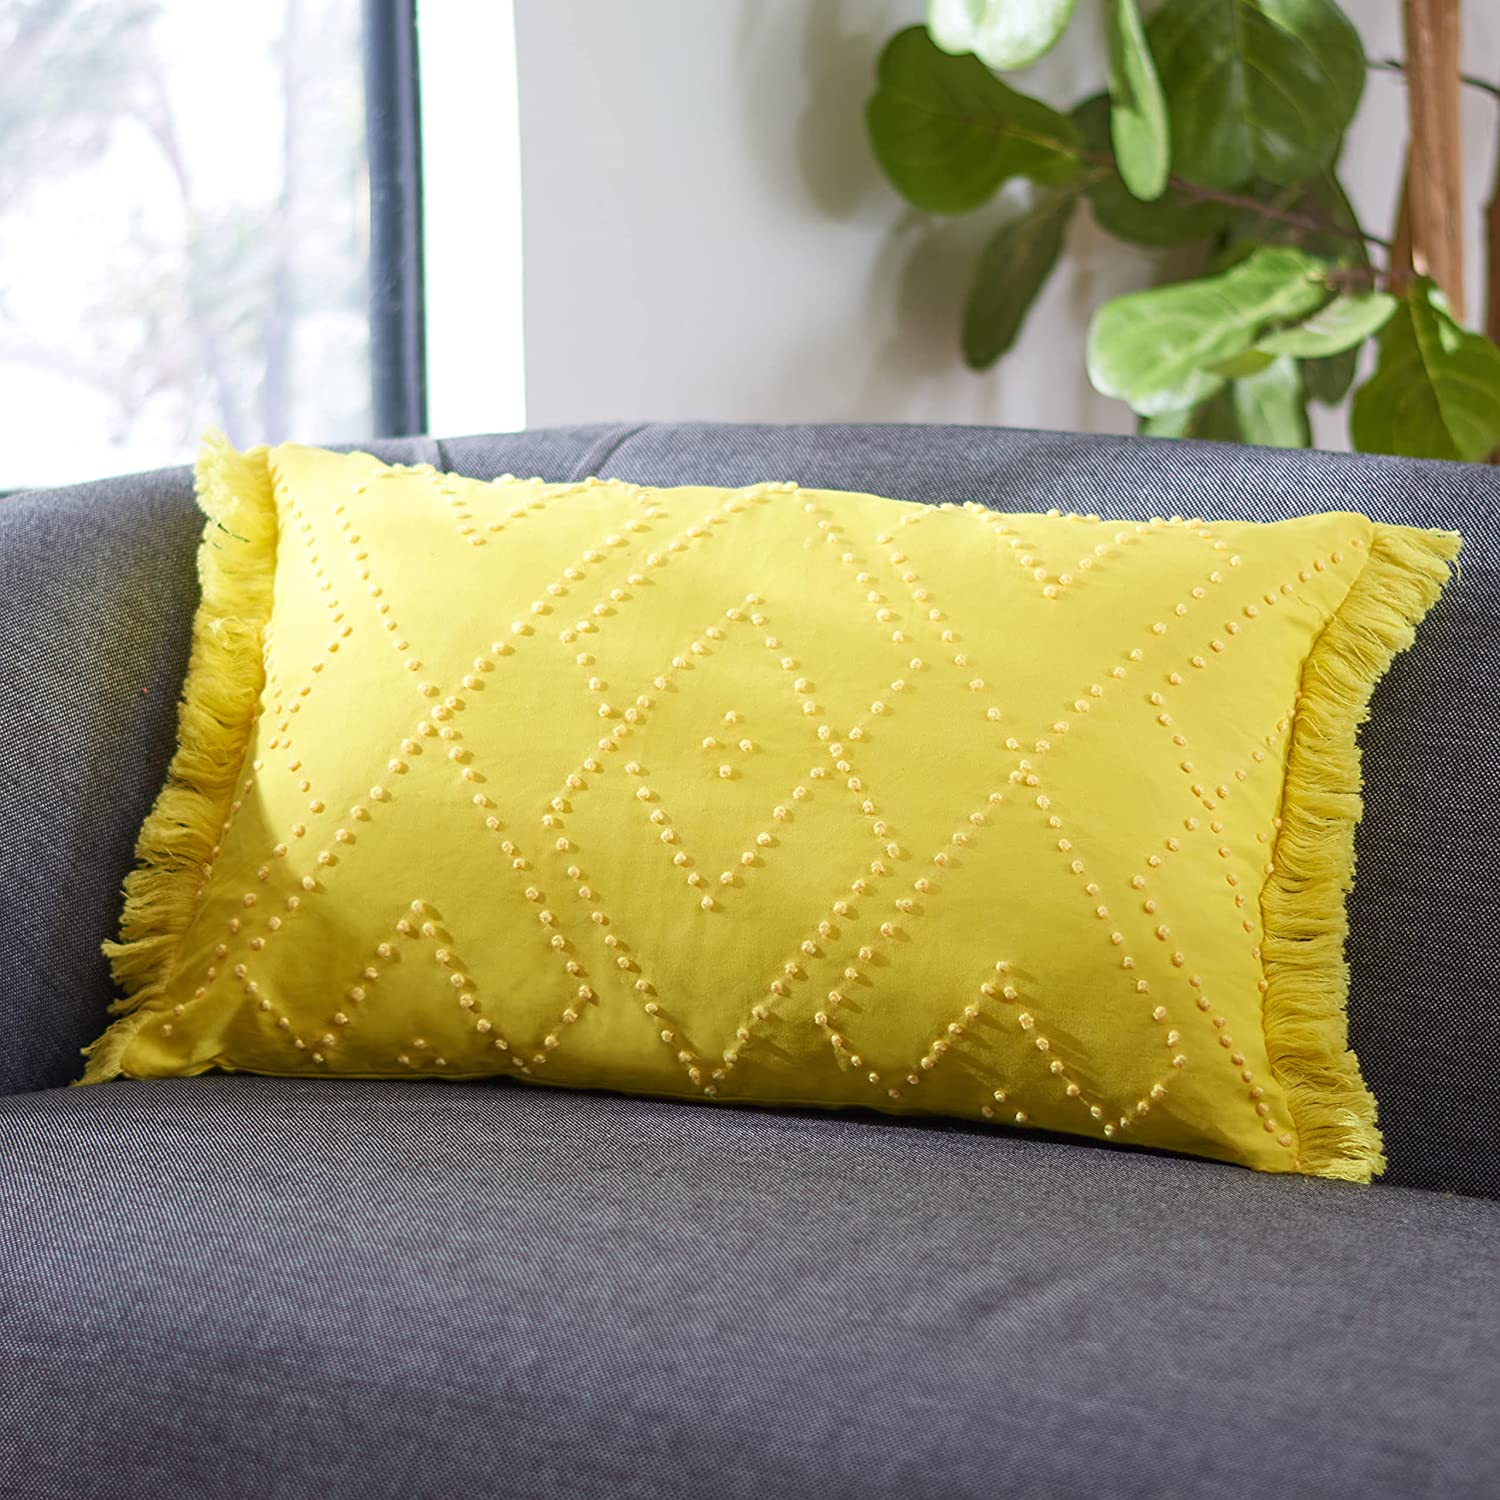 Safavieh Home Collection Sorena Boho 20-inch Max Discount mail order 63% OFF Decorat Yellow 12 x